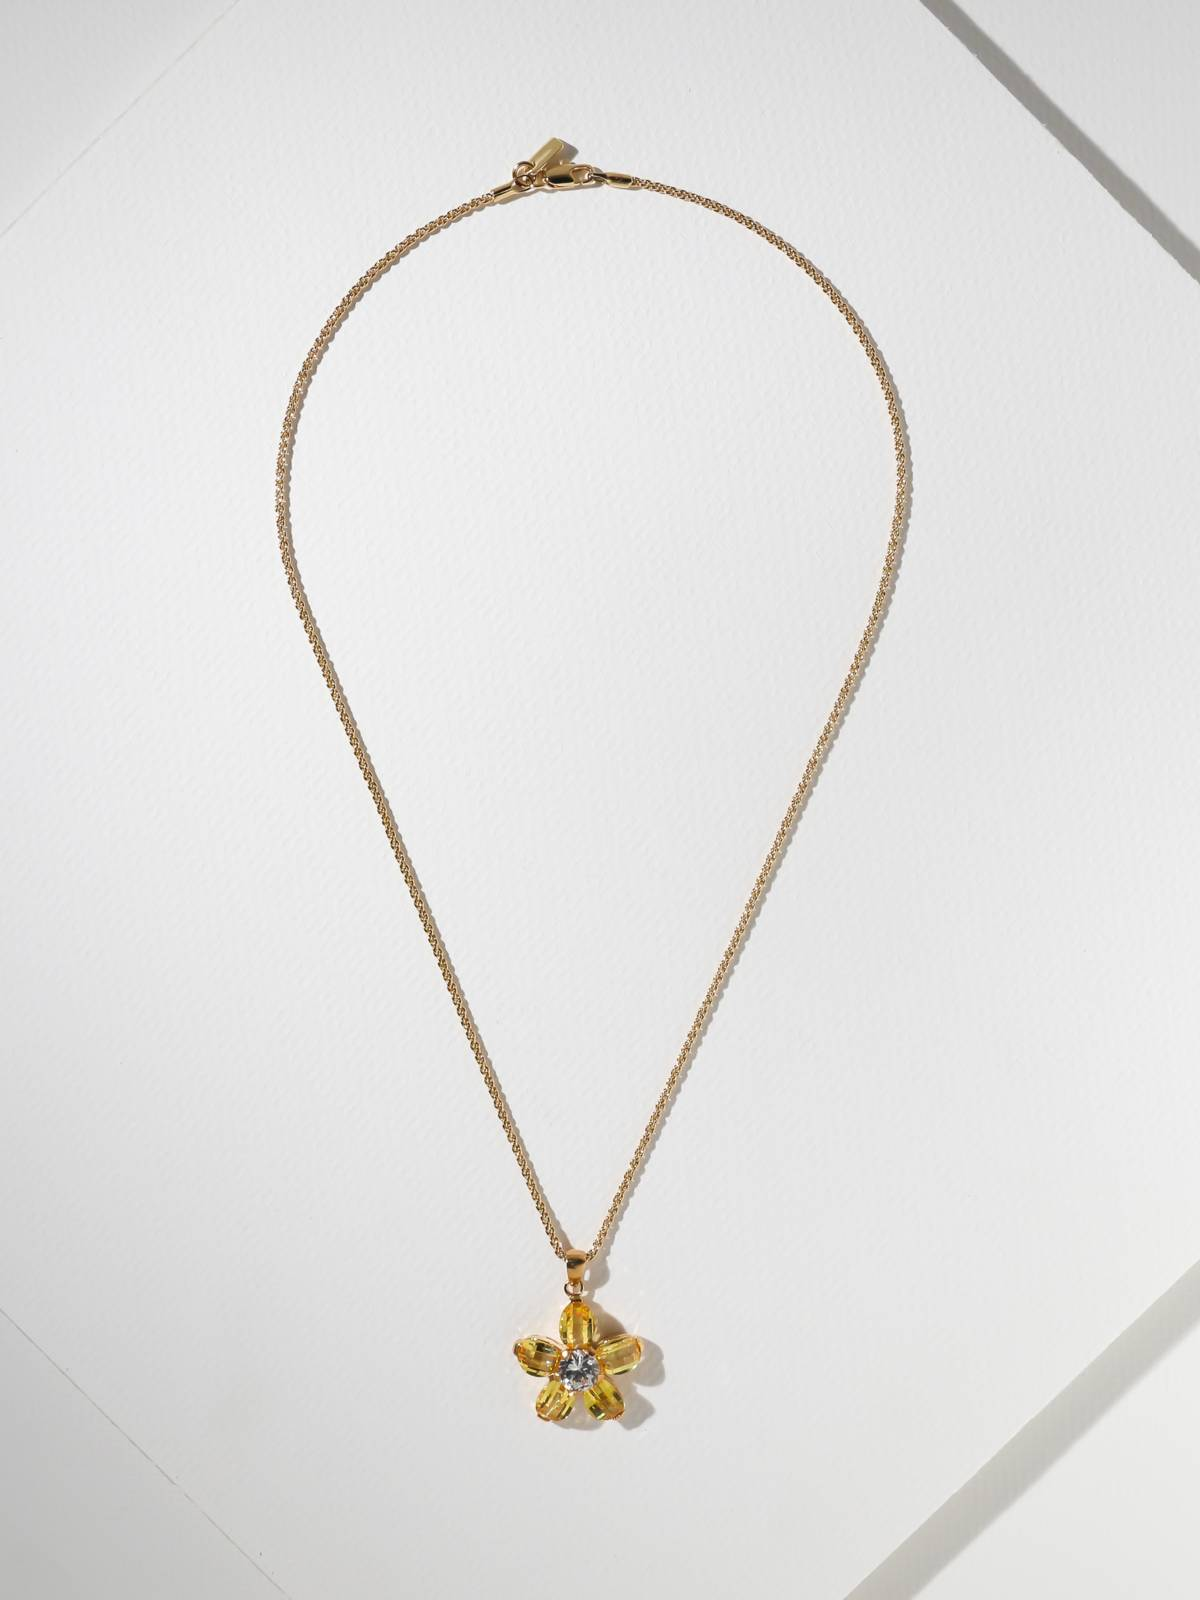 The Nubile Necklace